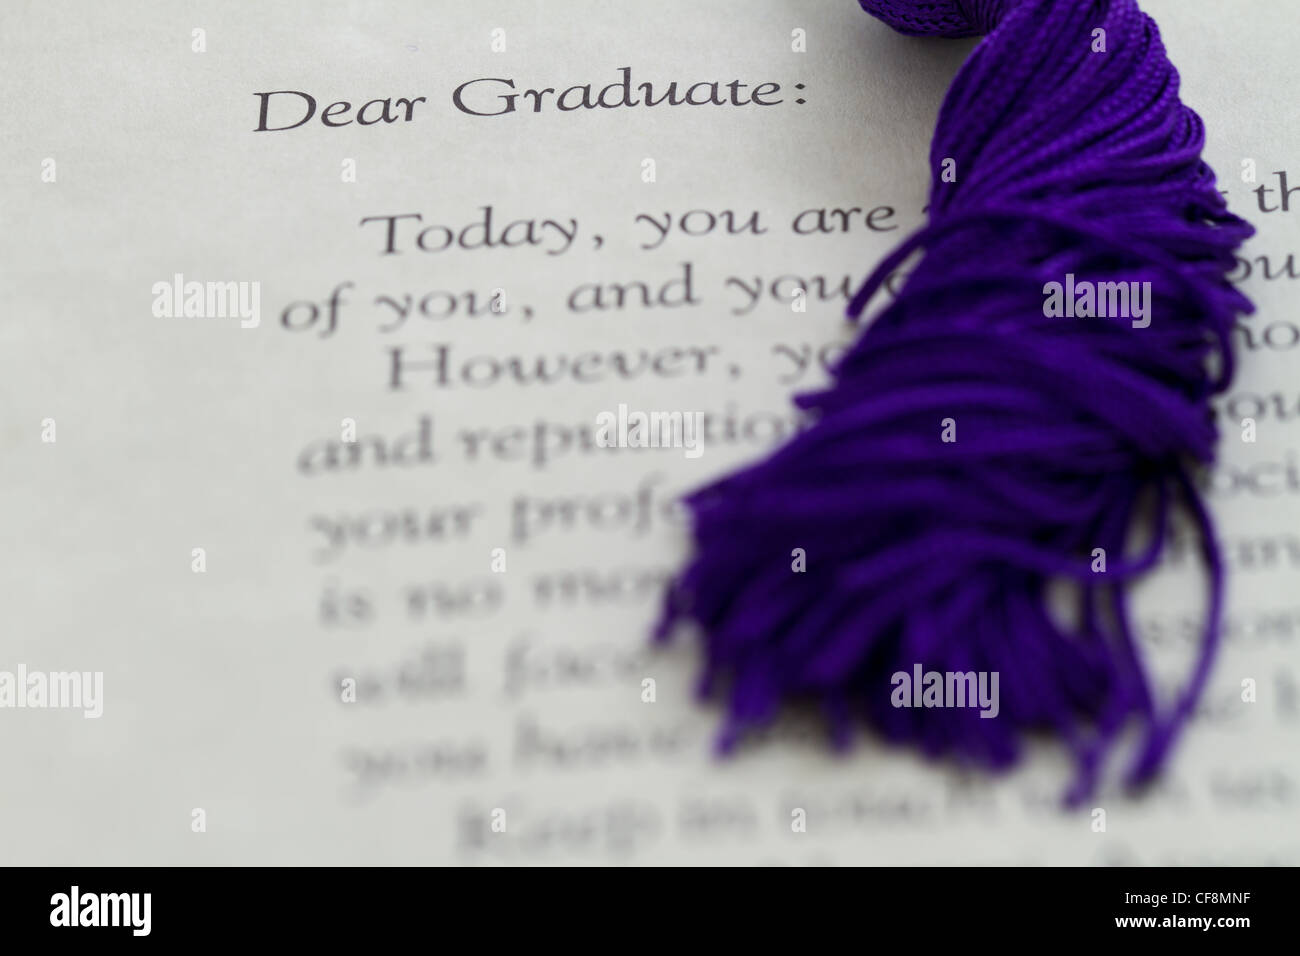 tassel/cord sitting on a graduation letter or diploma - Stock Image